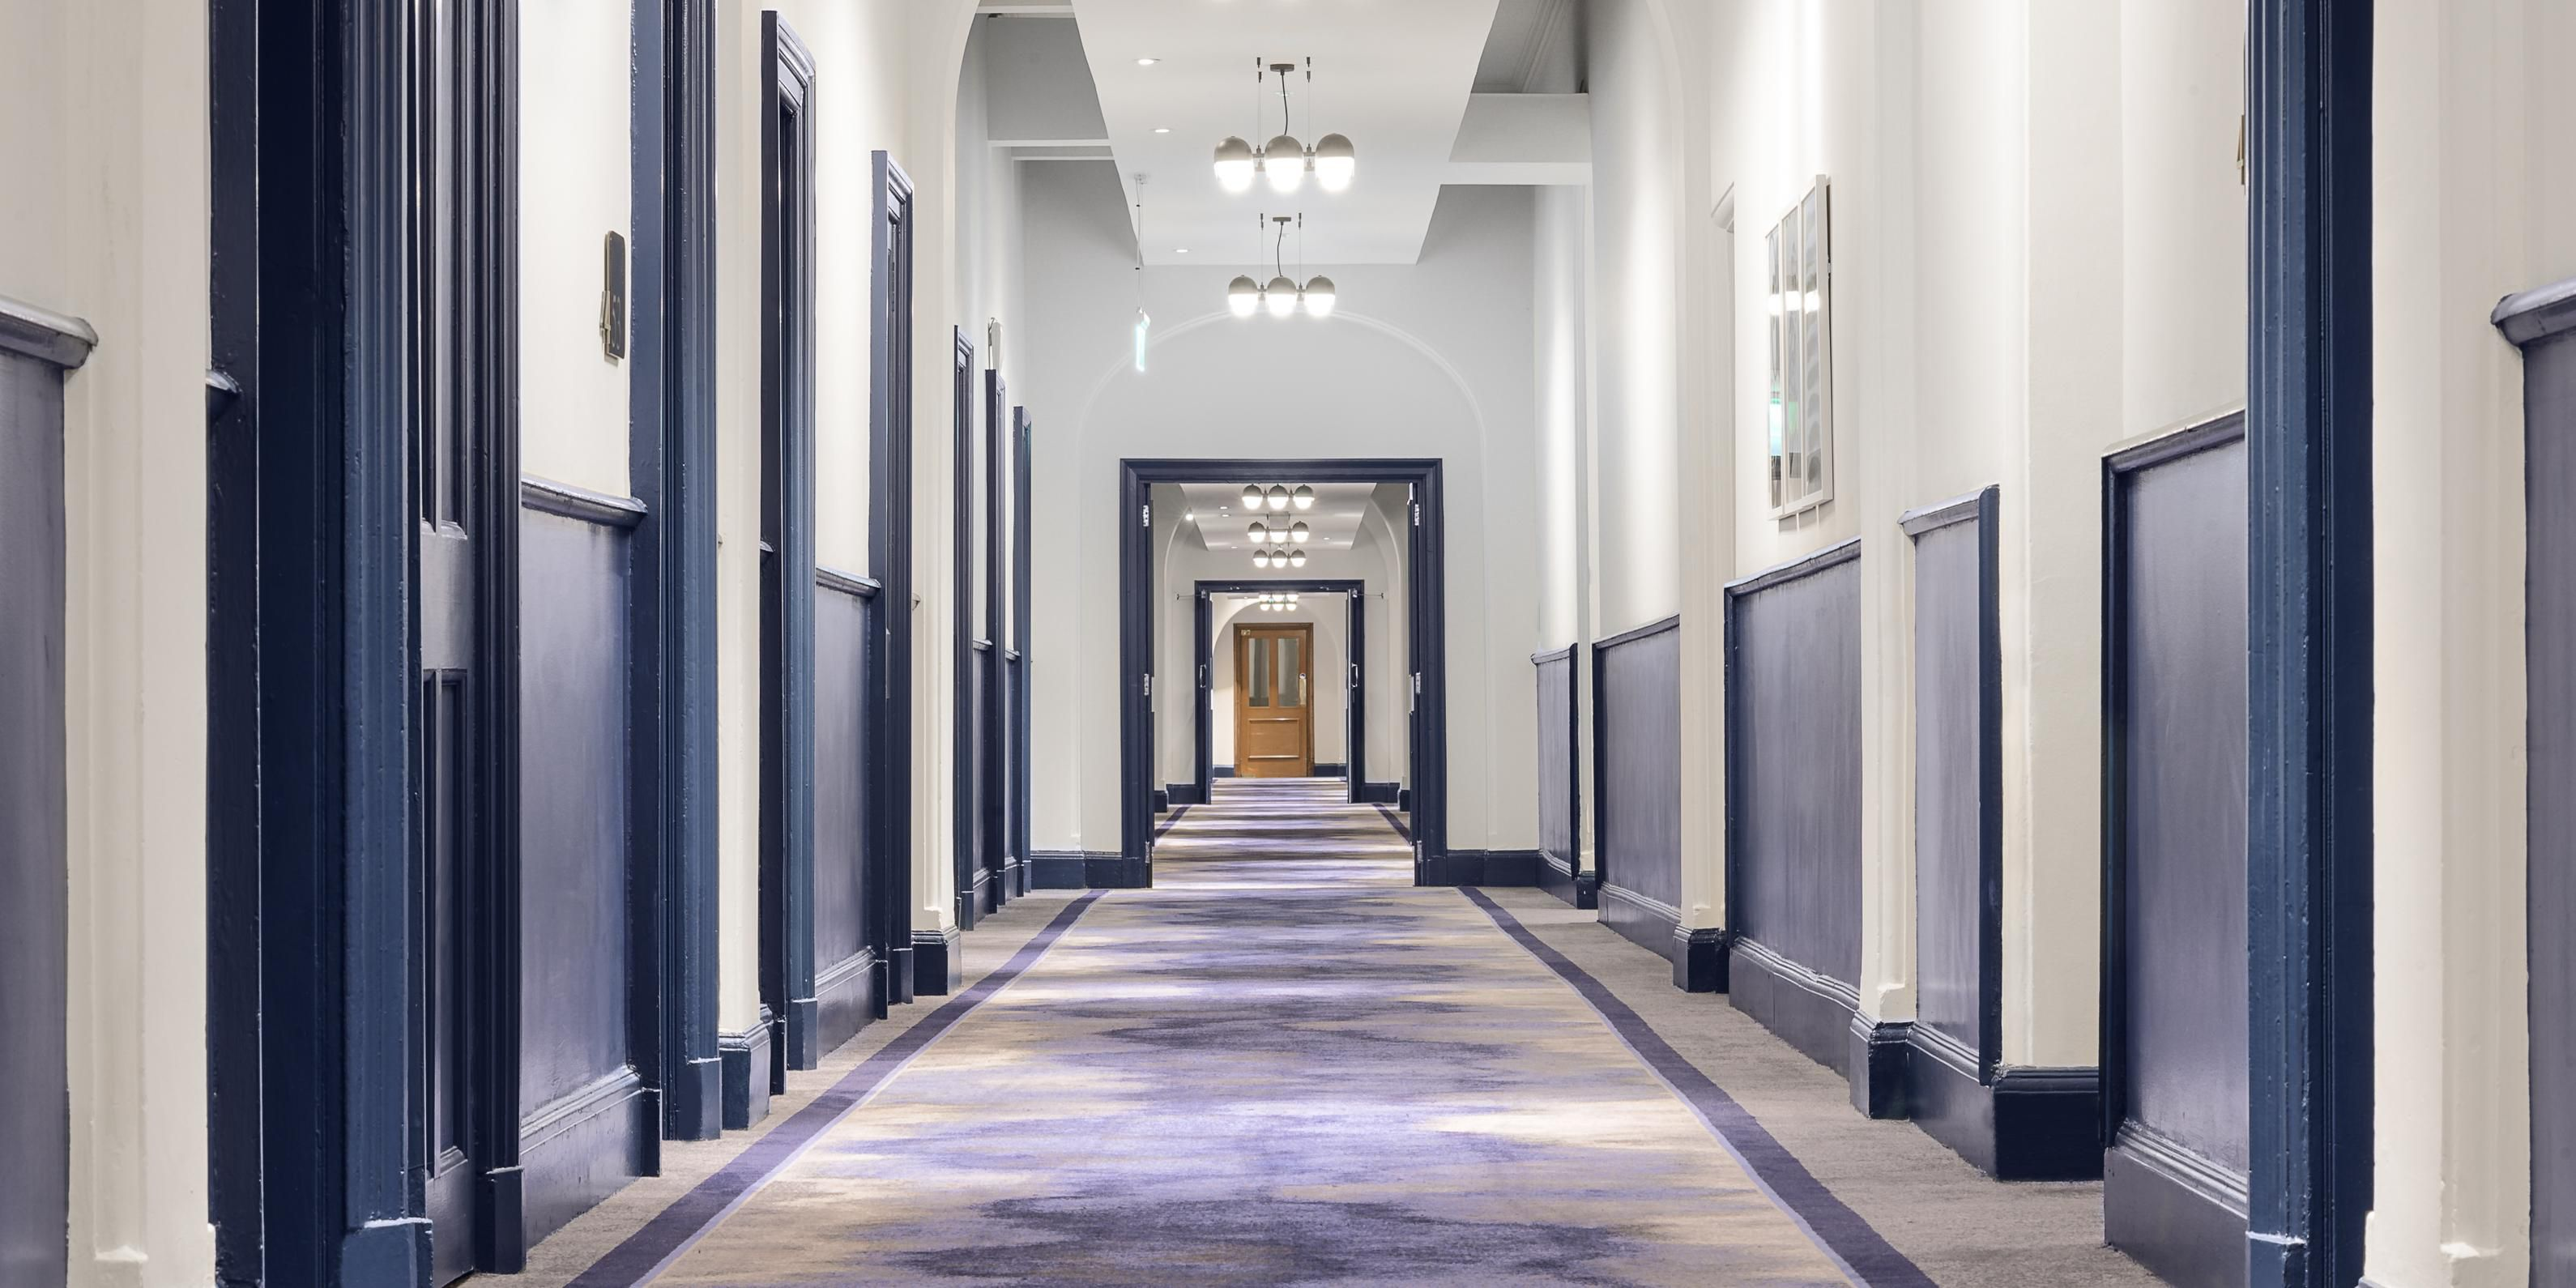 The grand Victorian corridors of the hotel